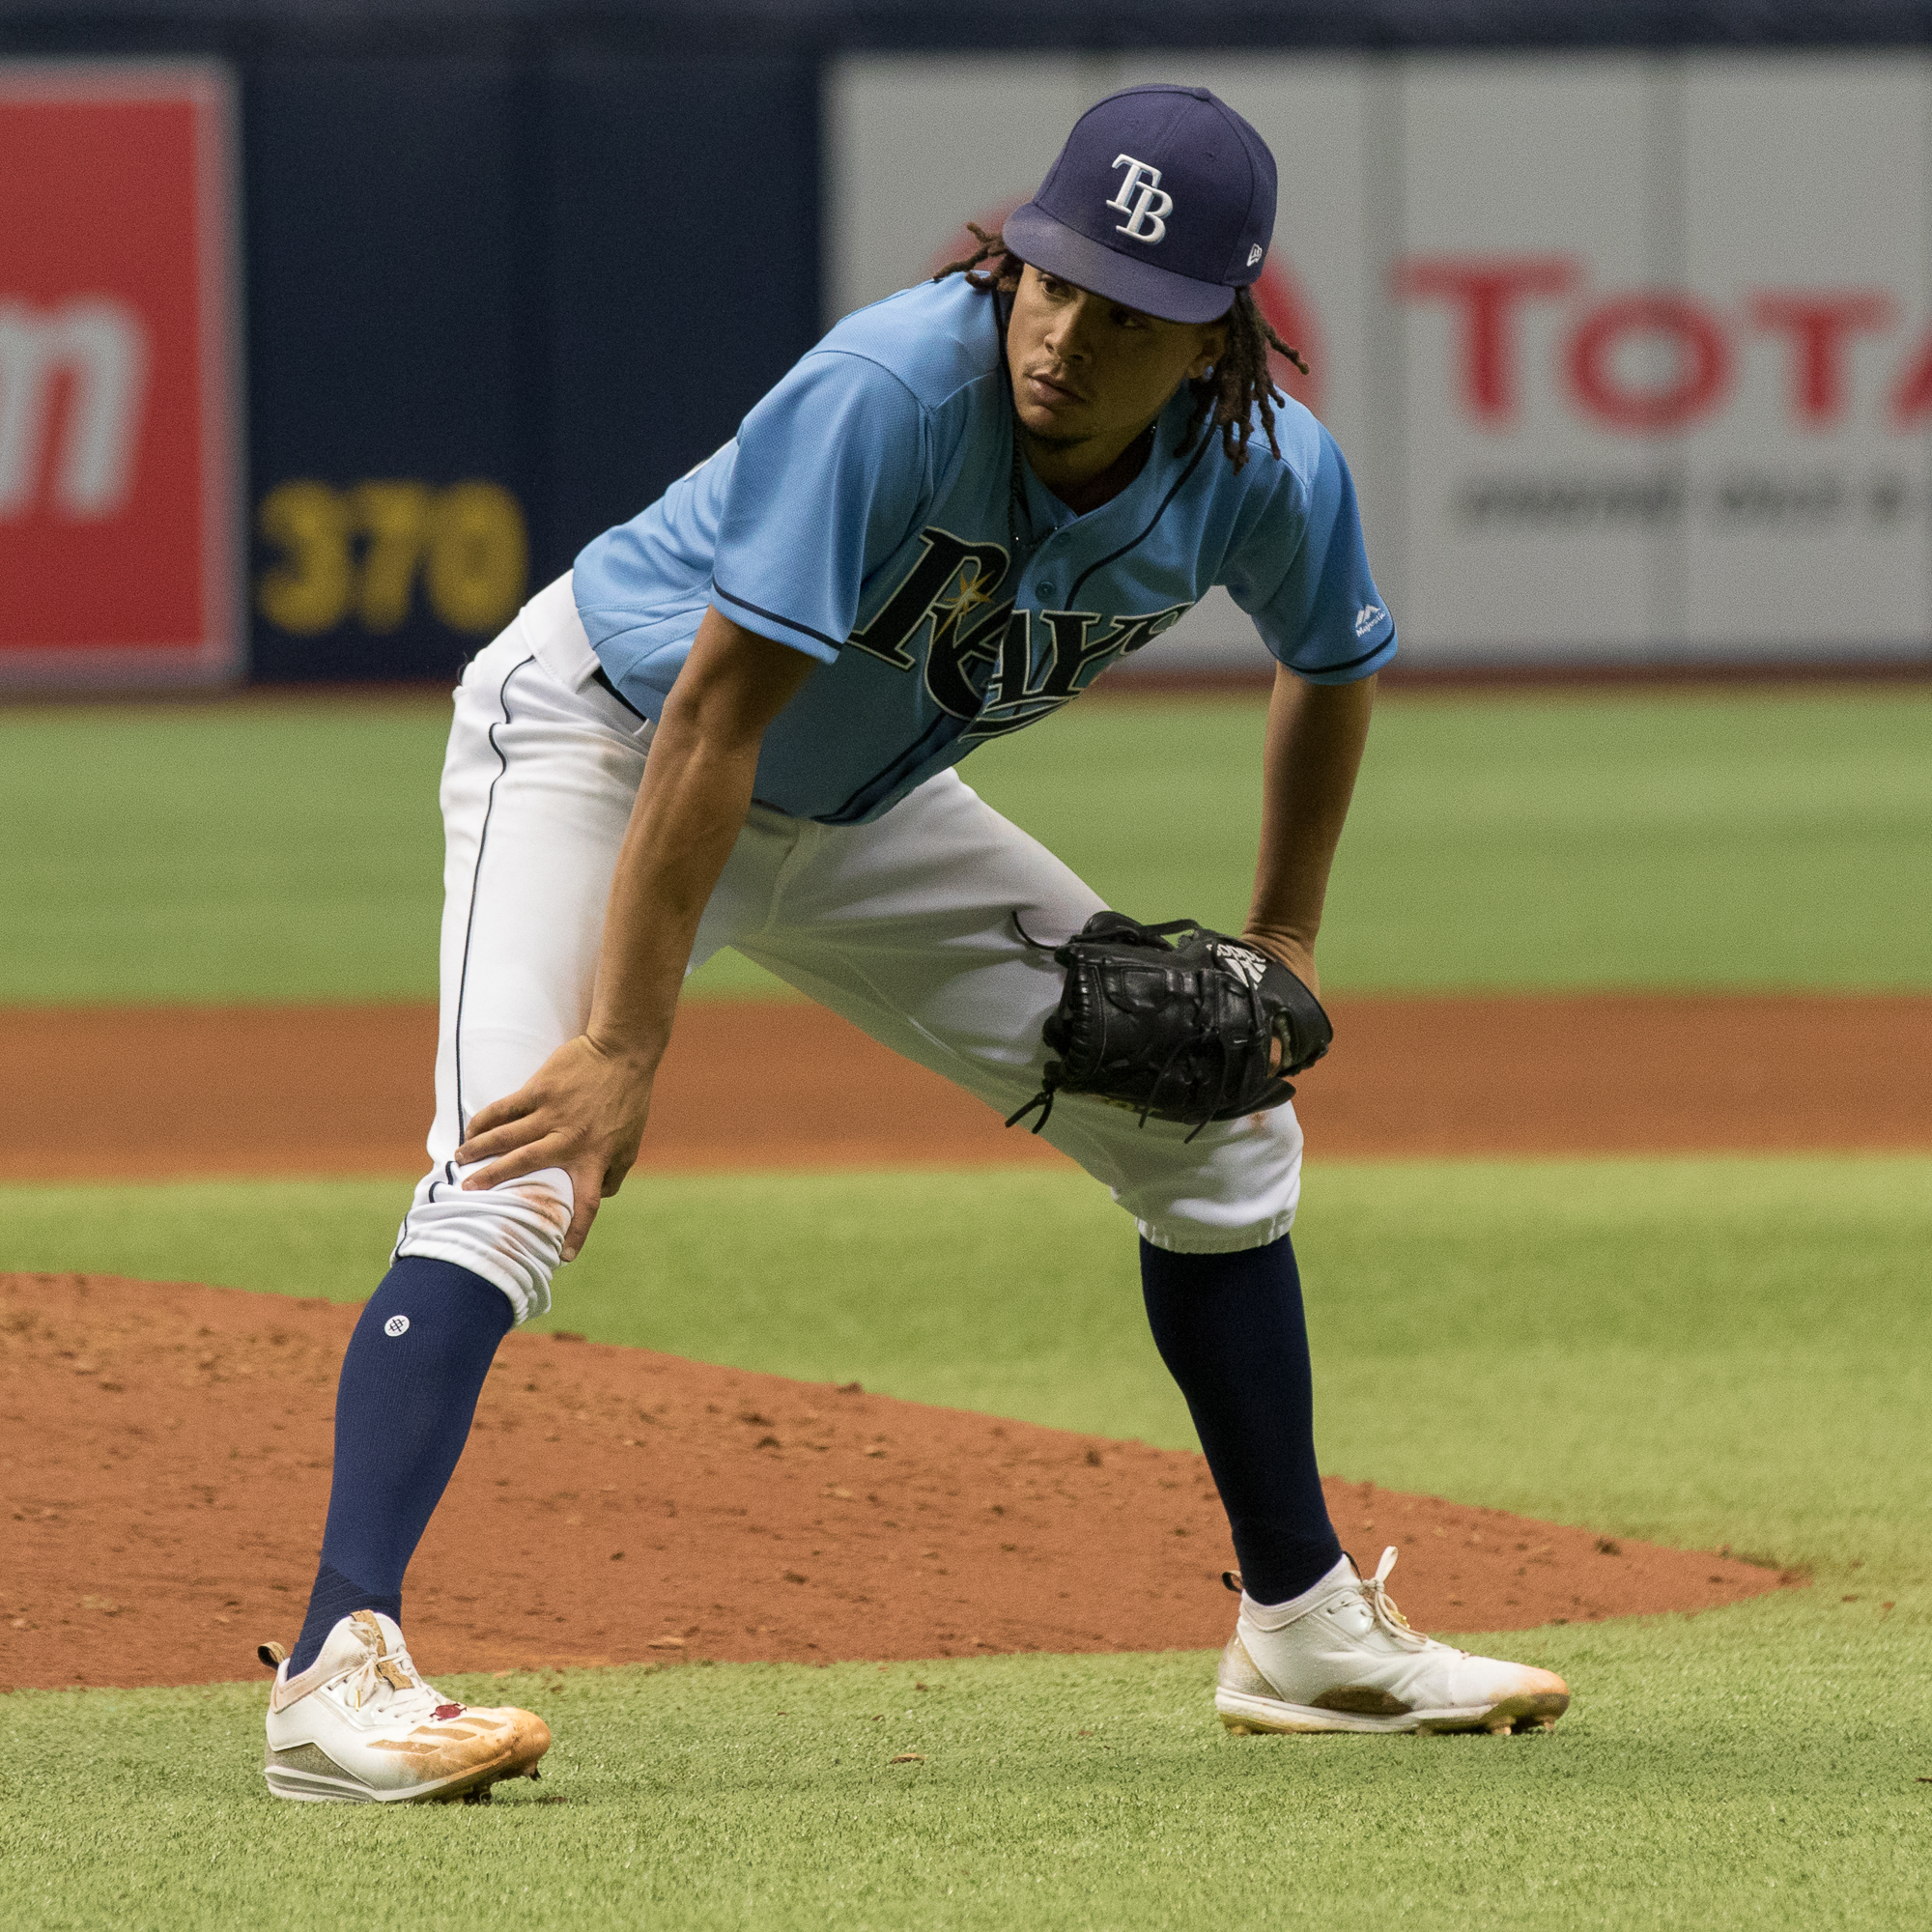 Chris Archer gave the Rays another quality start../STEVEN MUNCIE